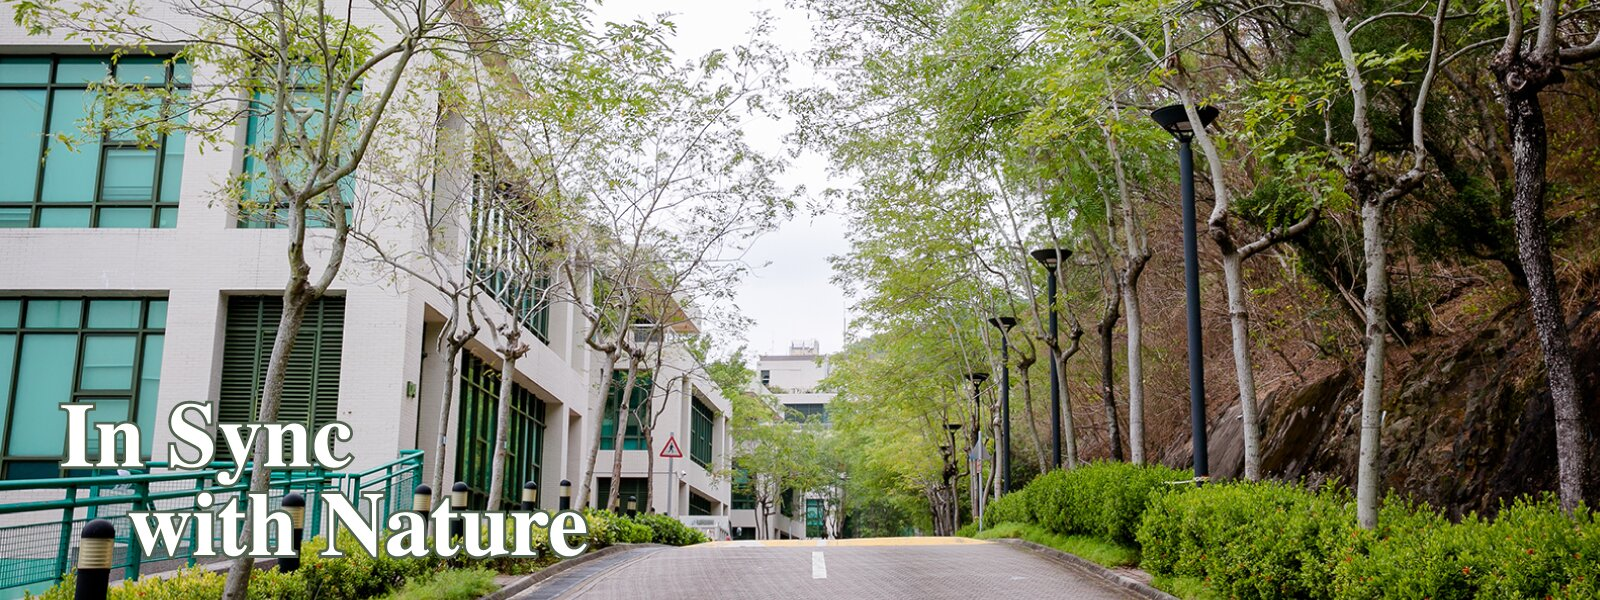 EdUHK campus-In Sync with Nature